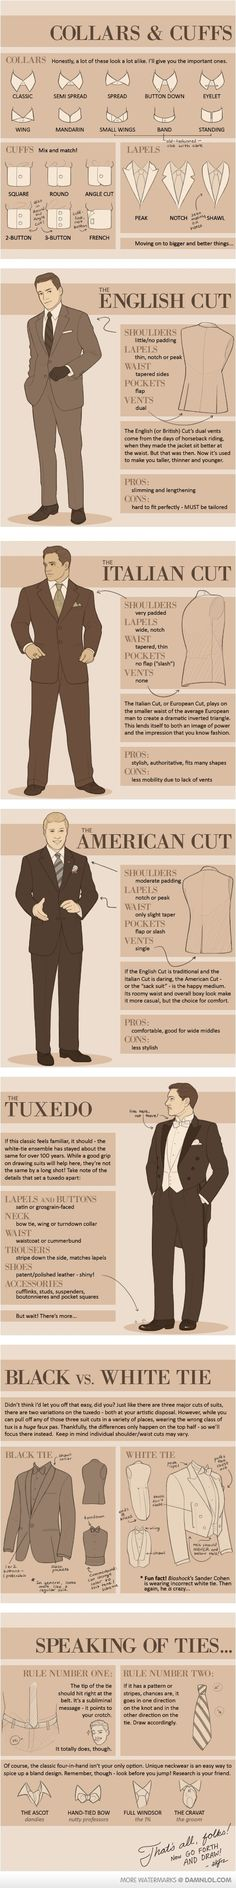 mens suit breakdown. Good to know